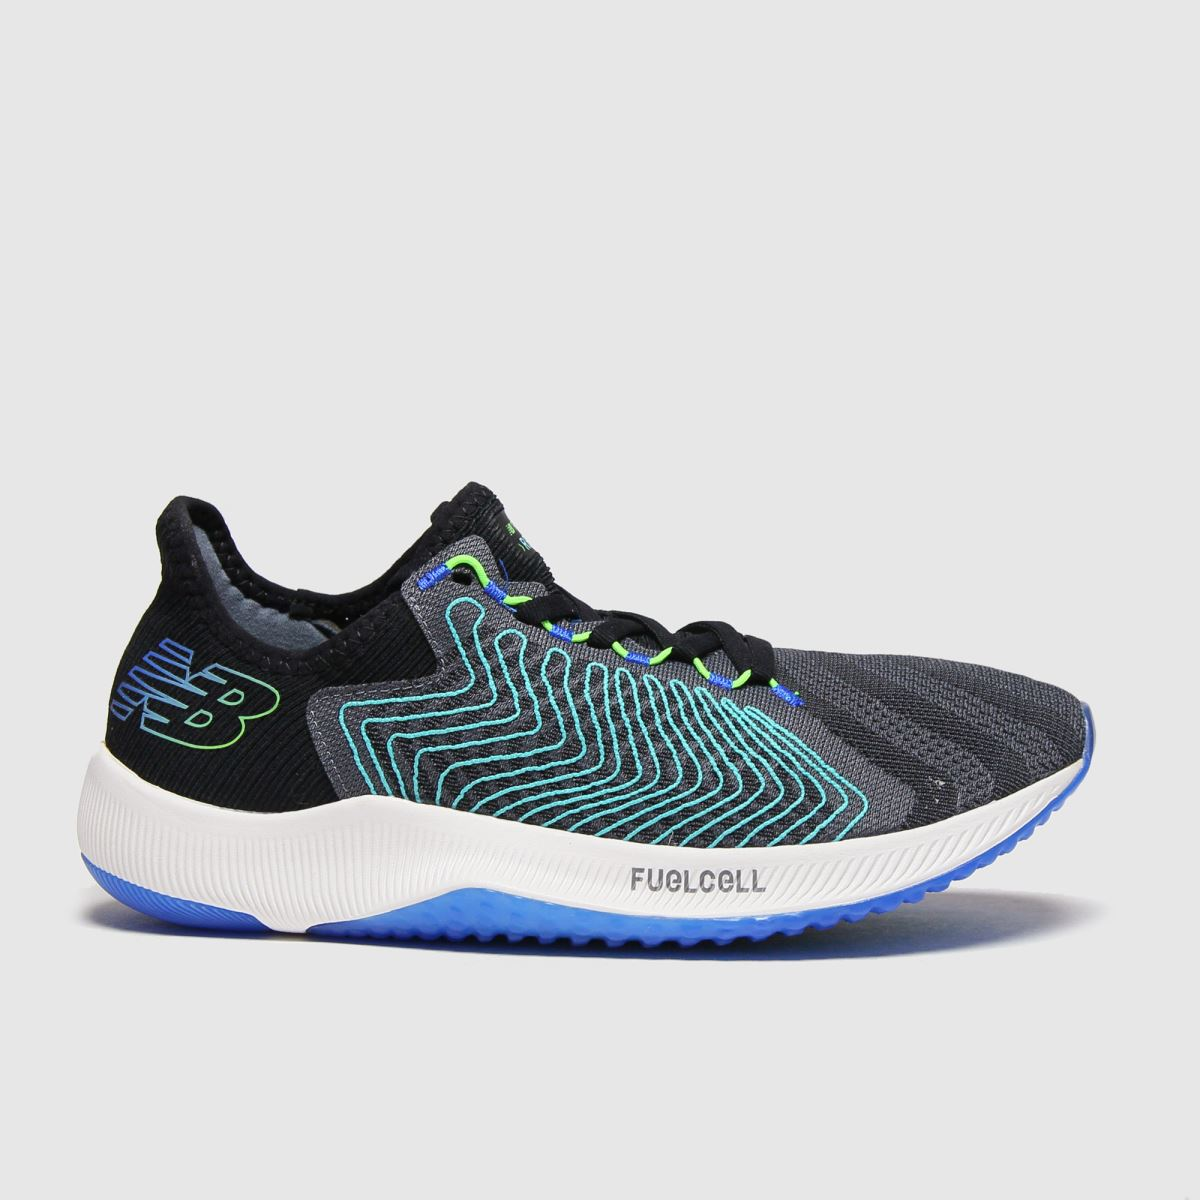 New Balance Black And Blue Fuelcell Rebel Trainers